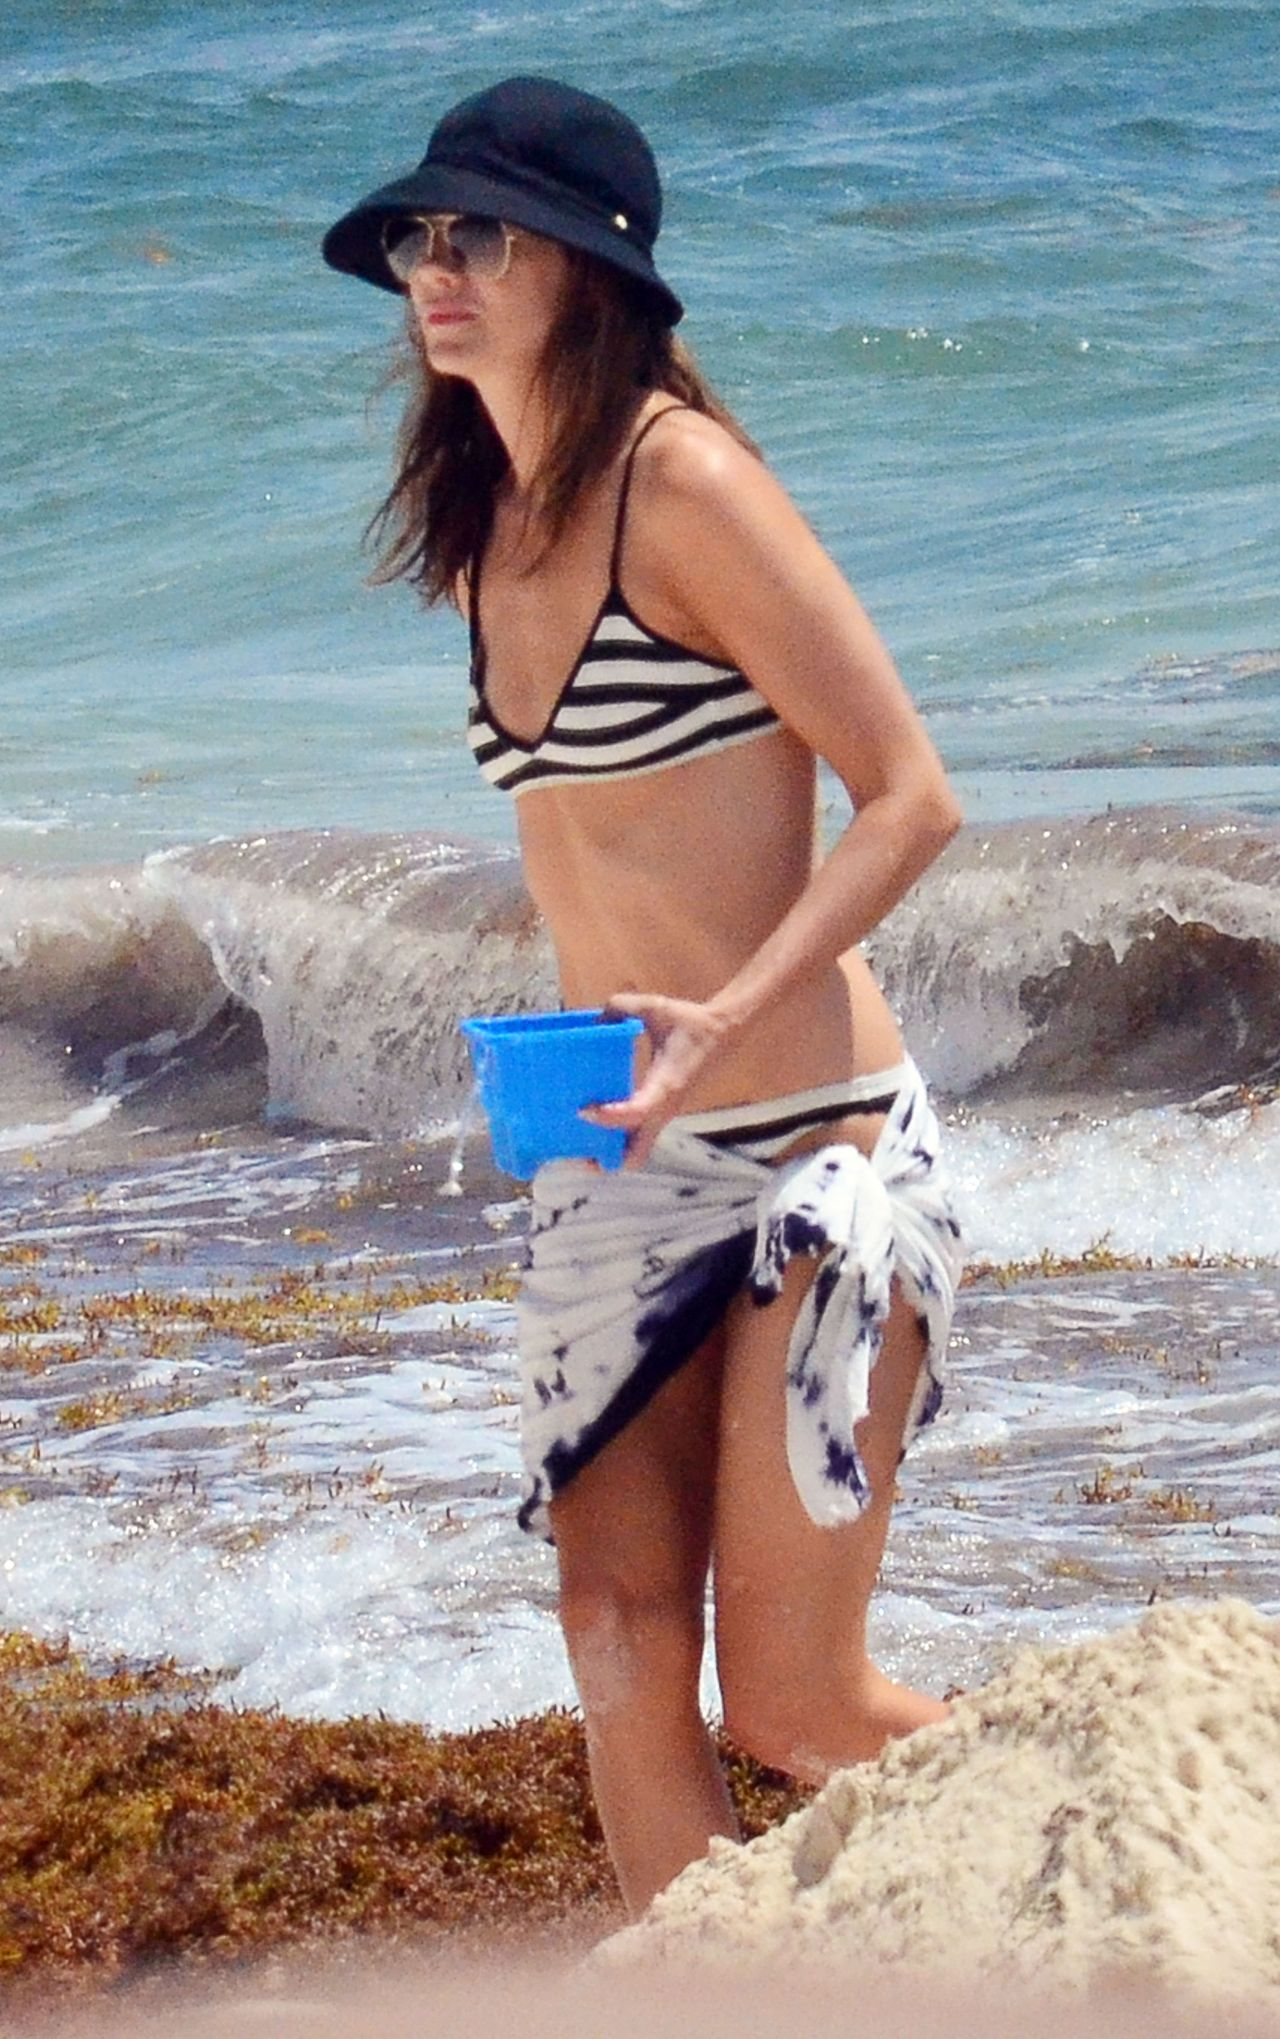 Michelle Monaghan on the Beach in Tulum, Mexico - March 2015